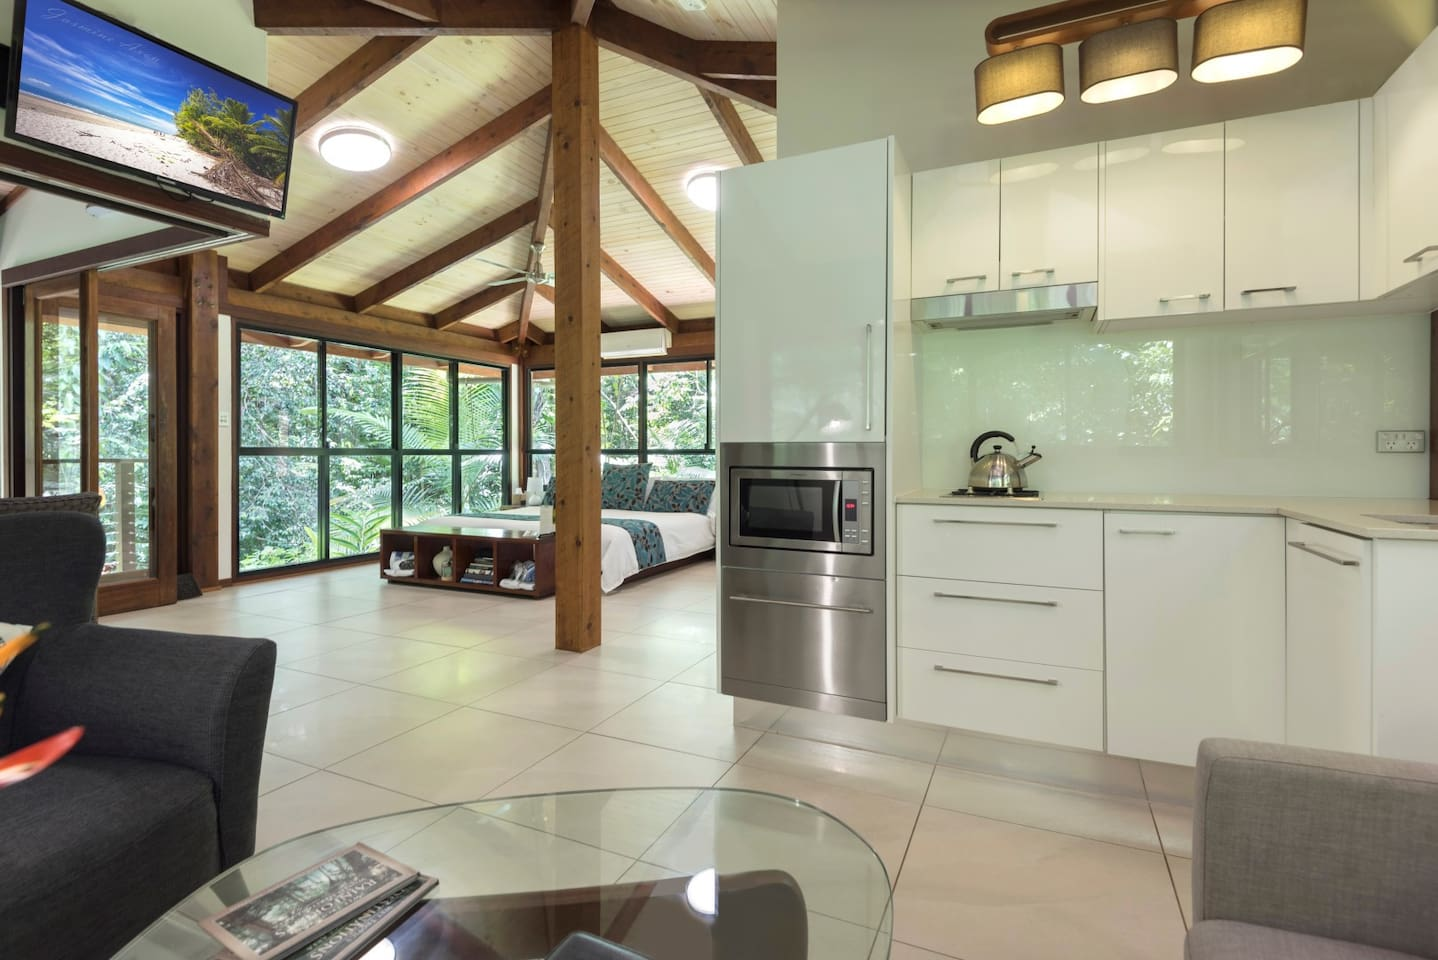 Floor to ceiling glass walls for stunning views of your own private piece of Daintree Rainforest...enormous super king bed,double spa bath, double rainshower with glass wall...luxuriate in air conditioned comfort of the Black Palm spa cabin